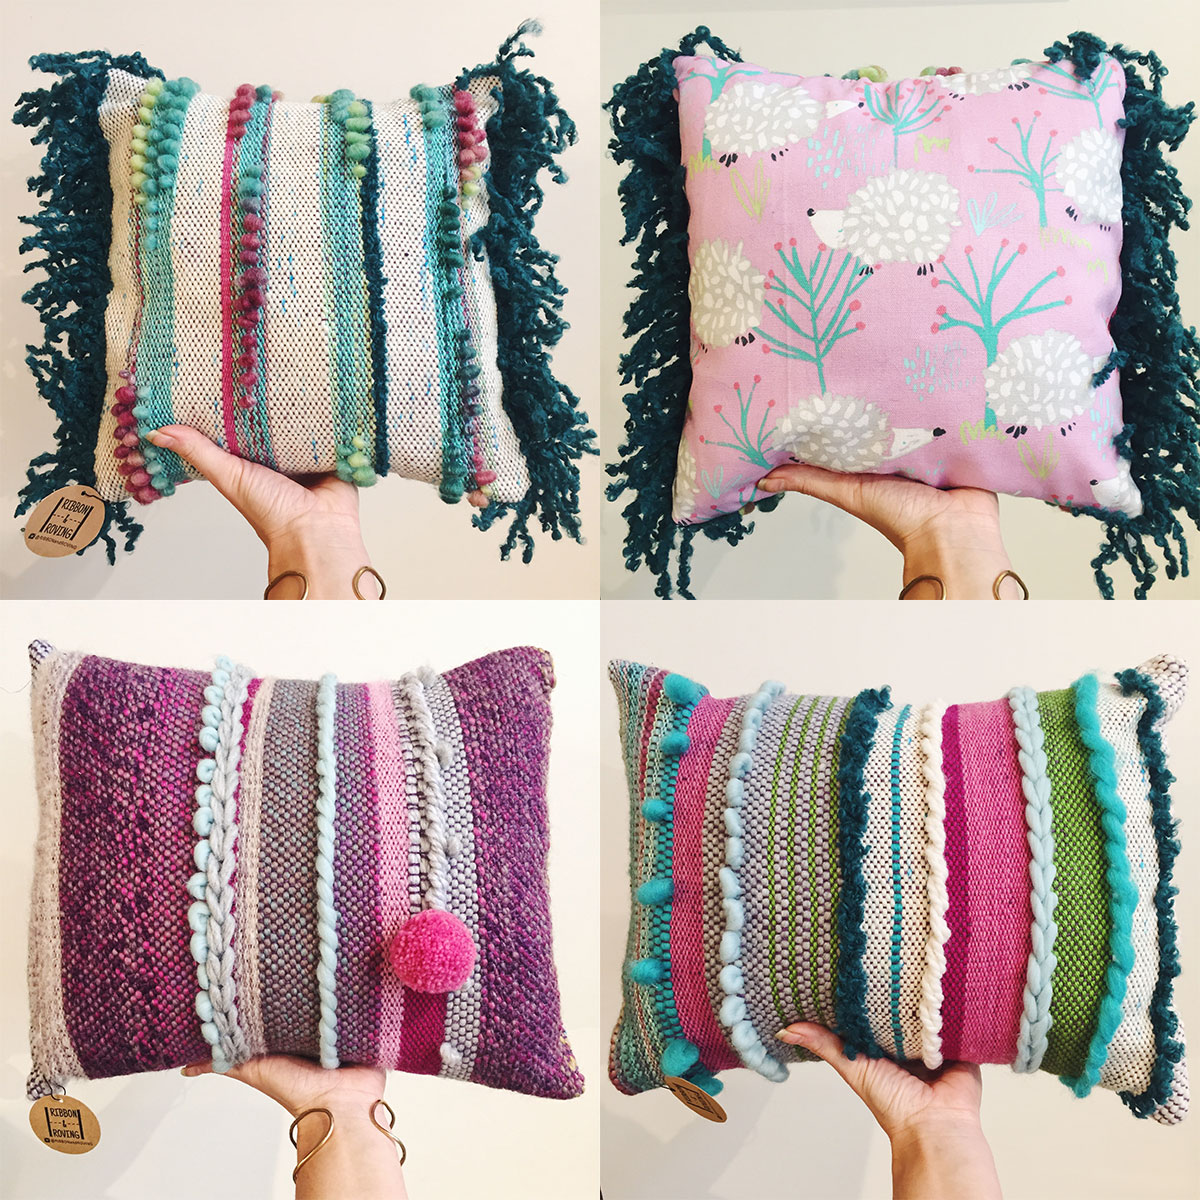 Handwoven pillows from Ribbon + Roving at Homespun: Modern Handmade